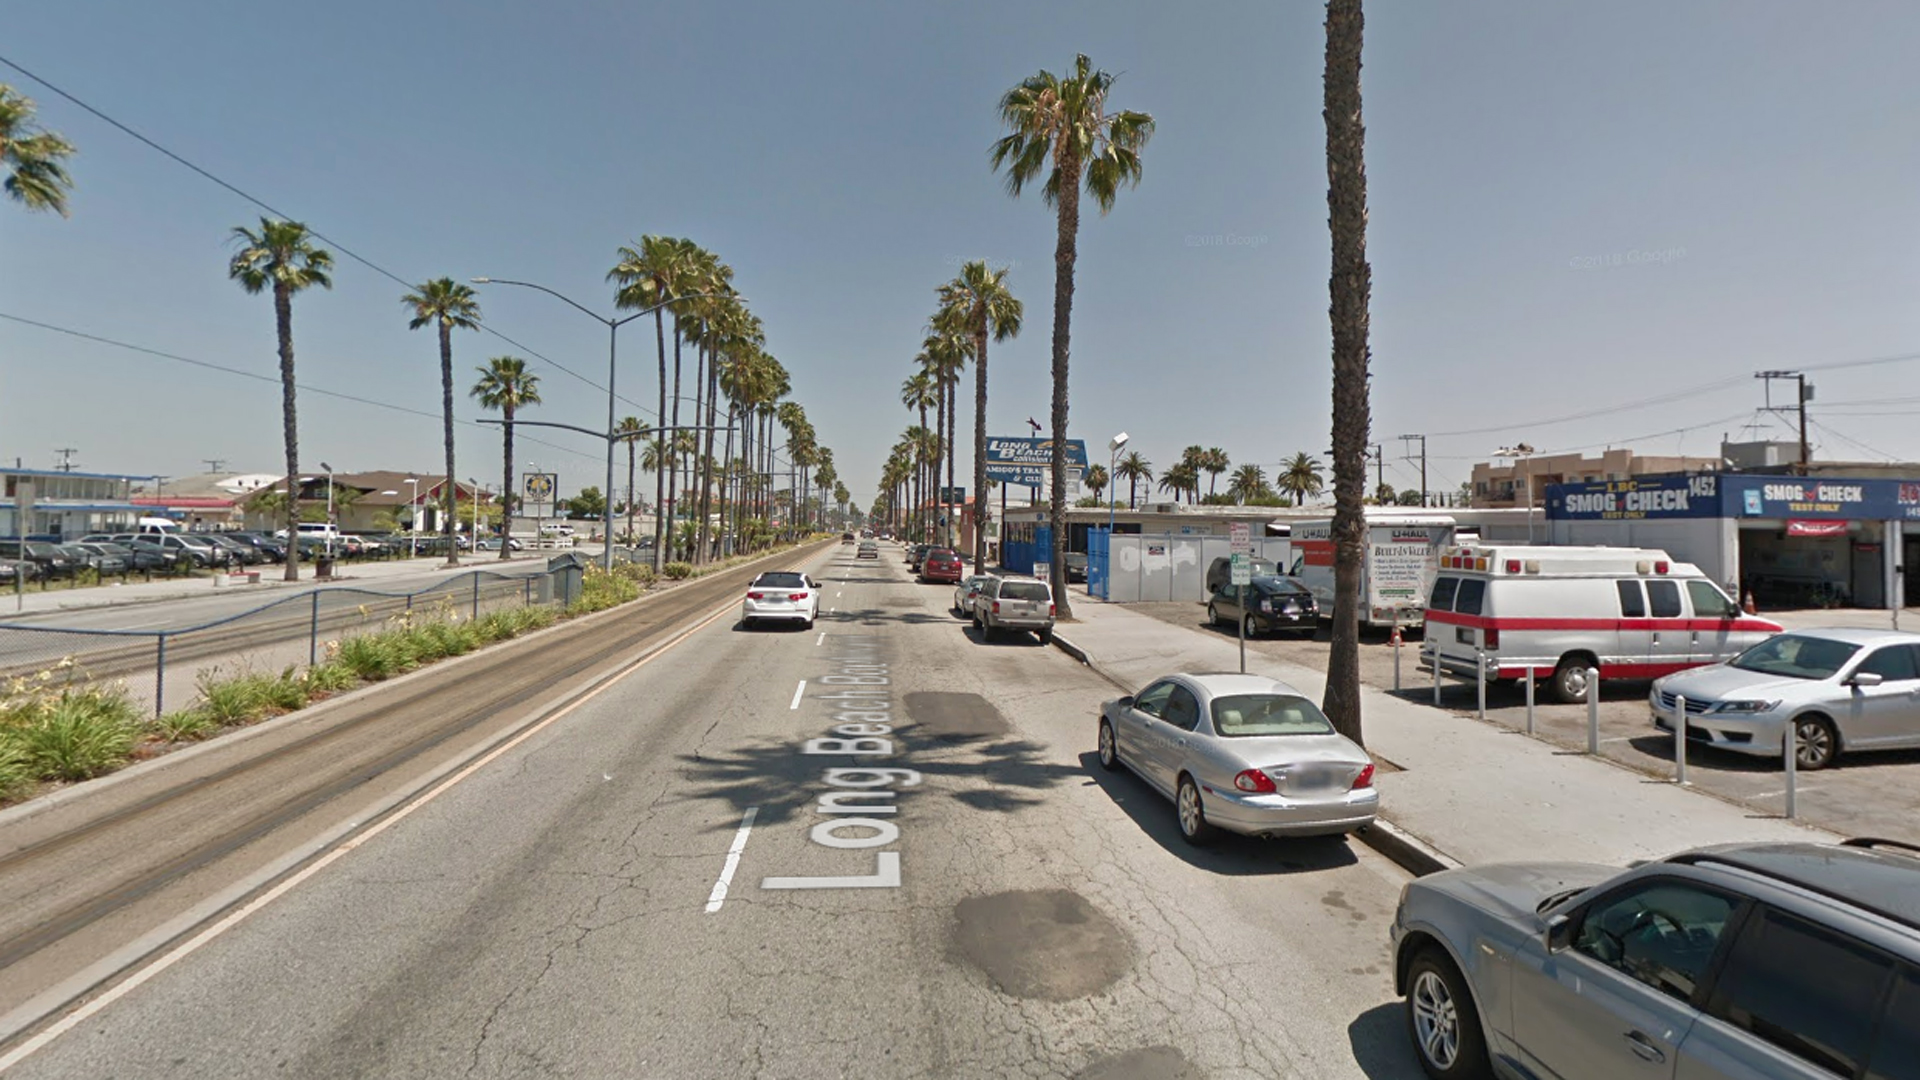 The 1400 block of Long Beach Boulevard in Long Beach, as pictured in a Google Street View image in June of 2017.